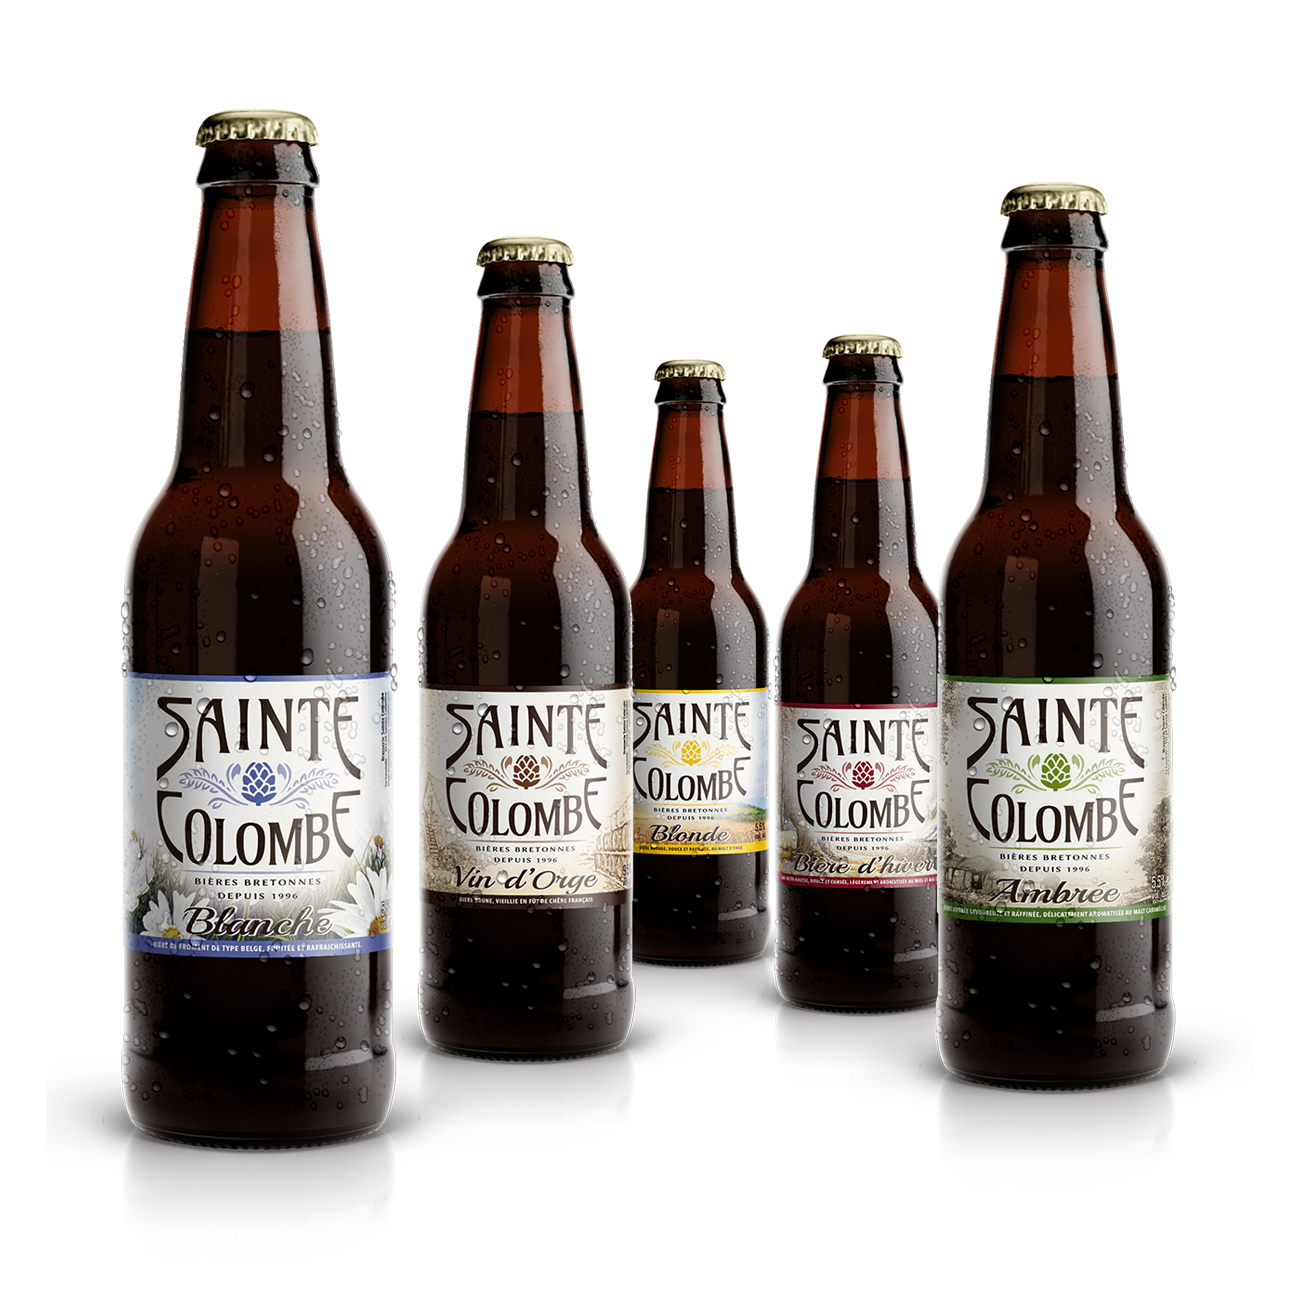 Sainte Colombe Packaging